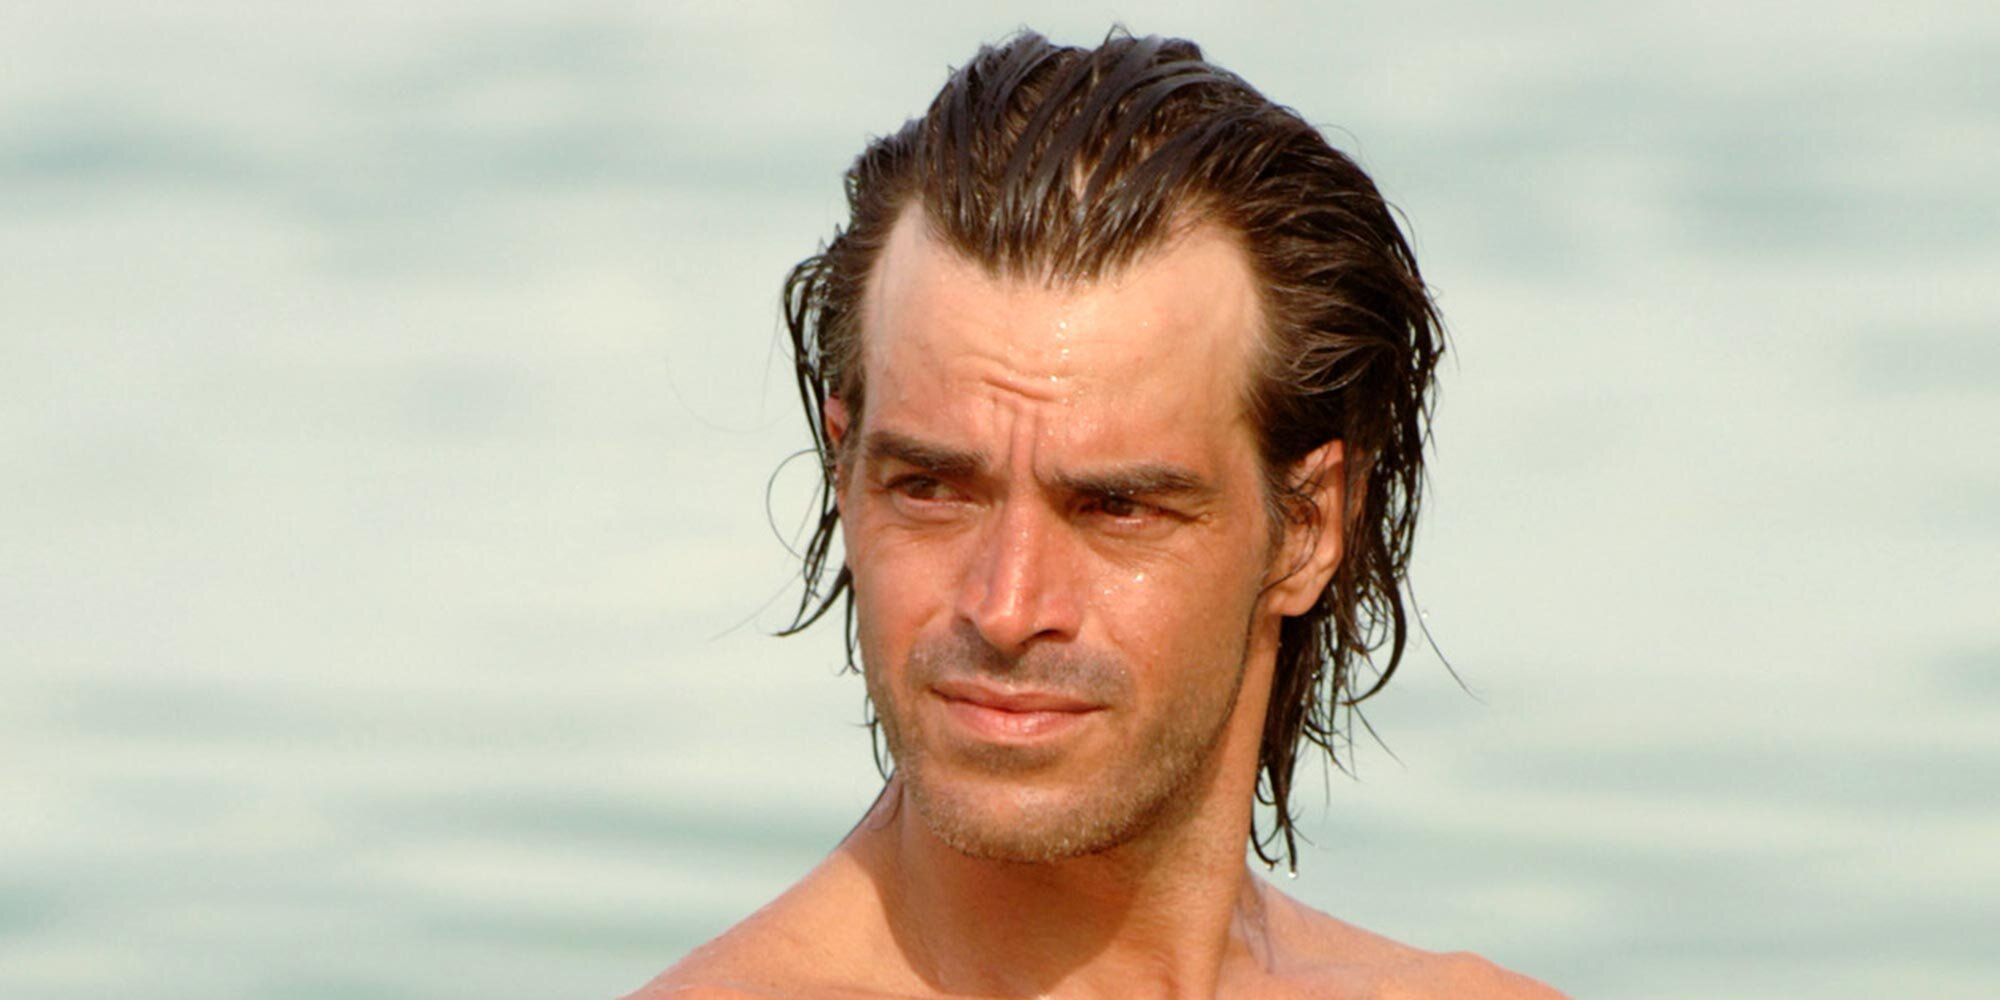 Shane Powers considered using 'Survivor' cocaine before challenges